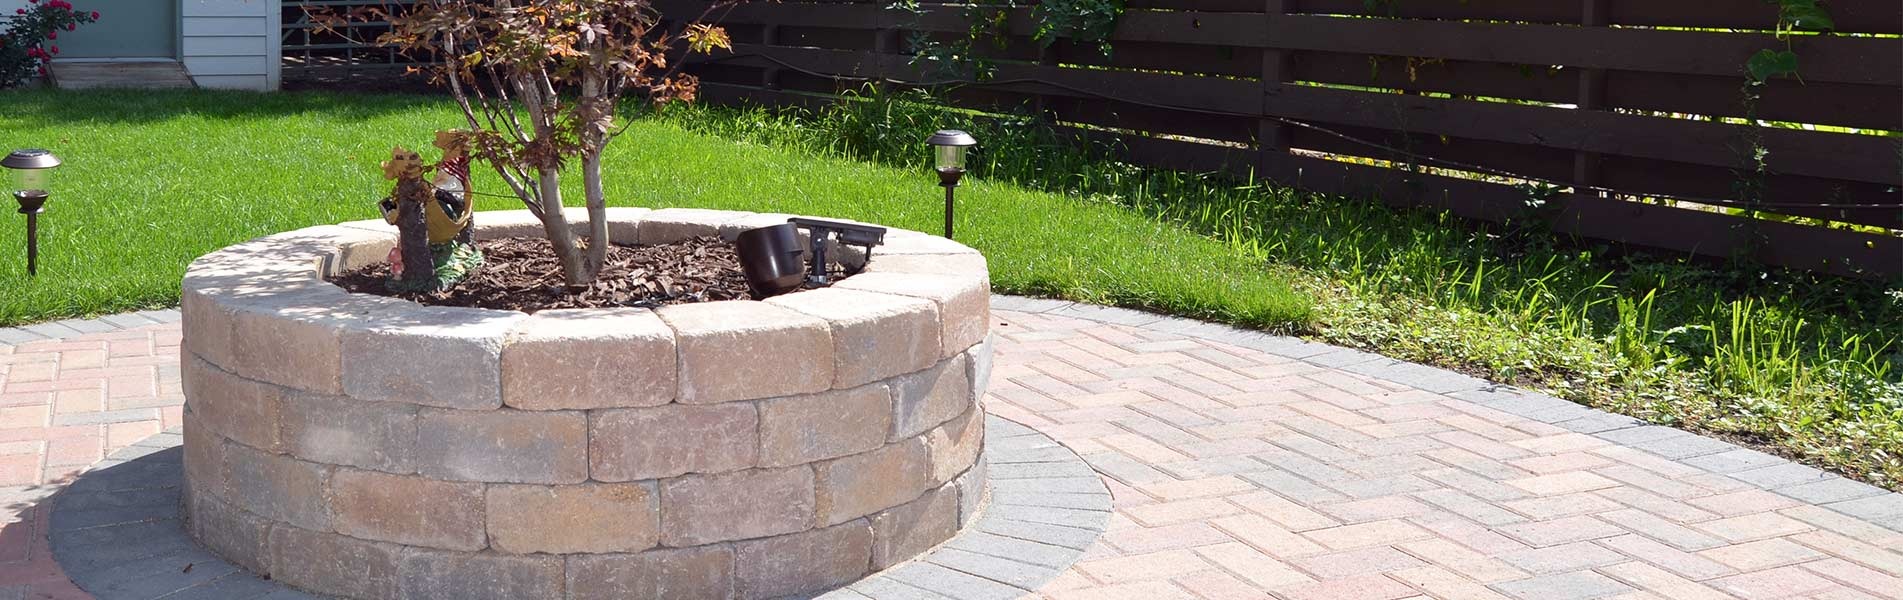 Patio Installation Services by B&C Pavers and Landscaping